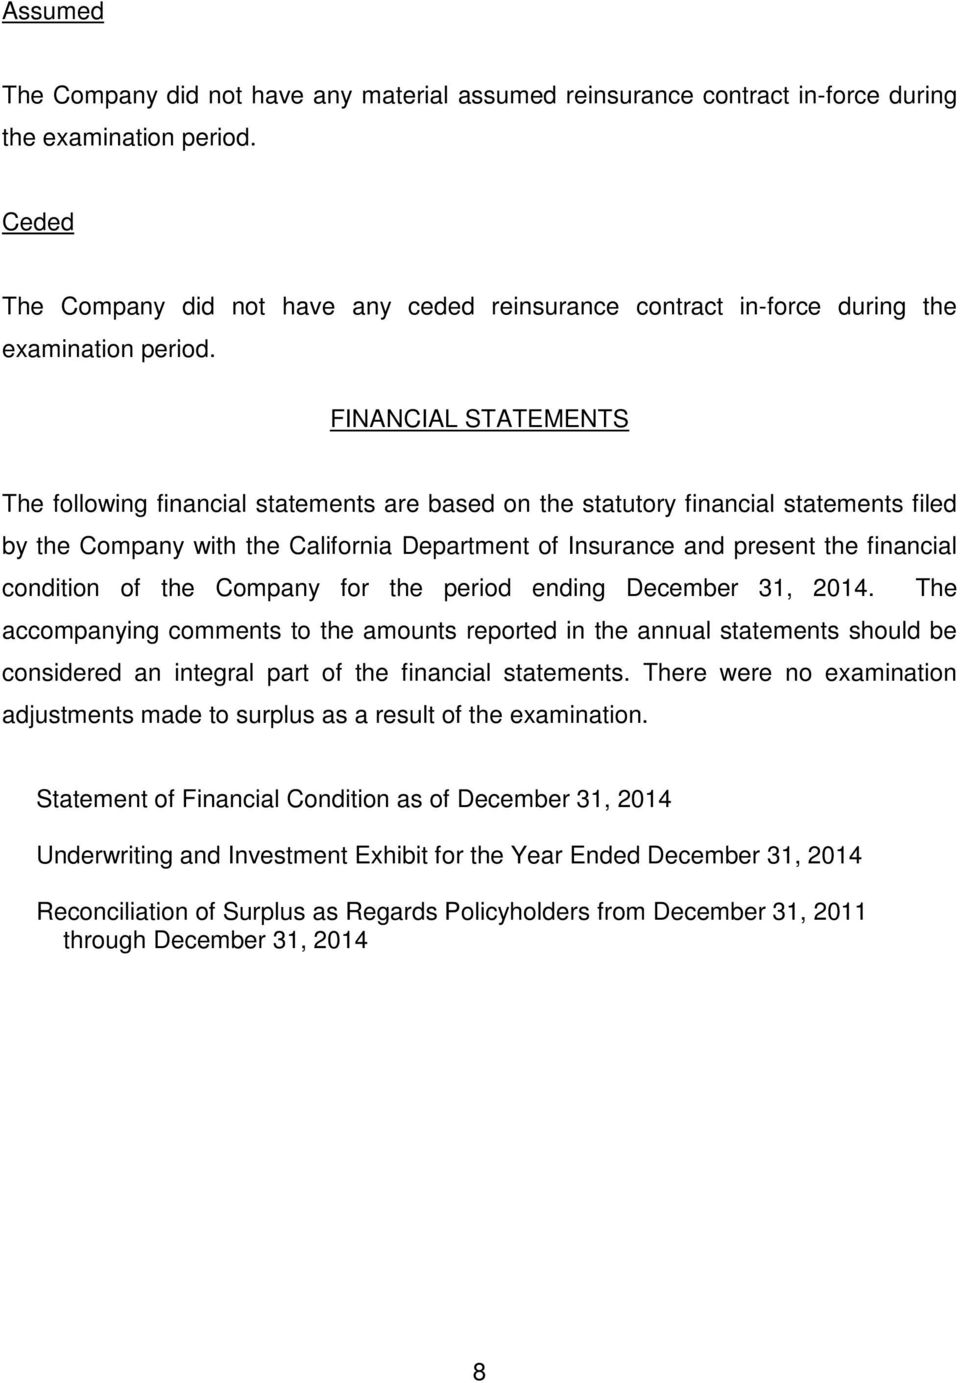 FINANCIAL STATEMENTS The following financial statements are based on the statutory financial statements filed by the Company with the California Department of Insurance and present the financial